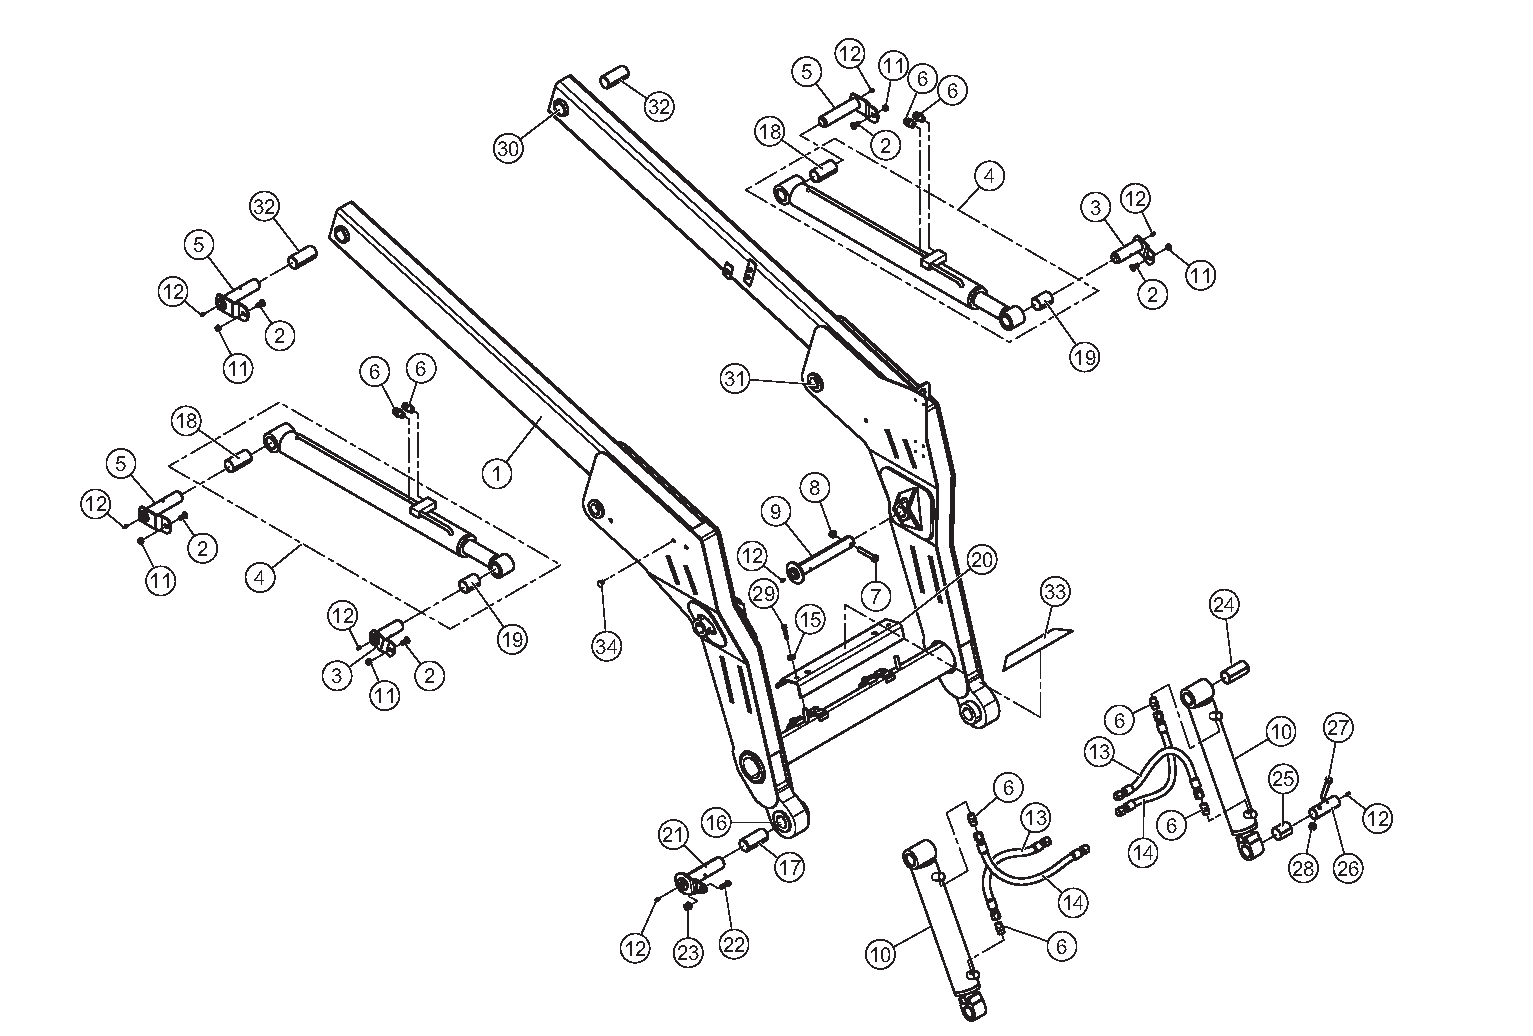 Diagram 23-A Lift Arm Assembly